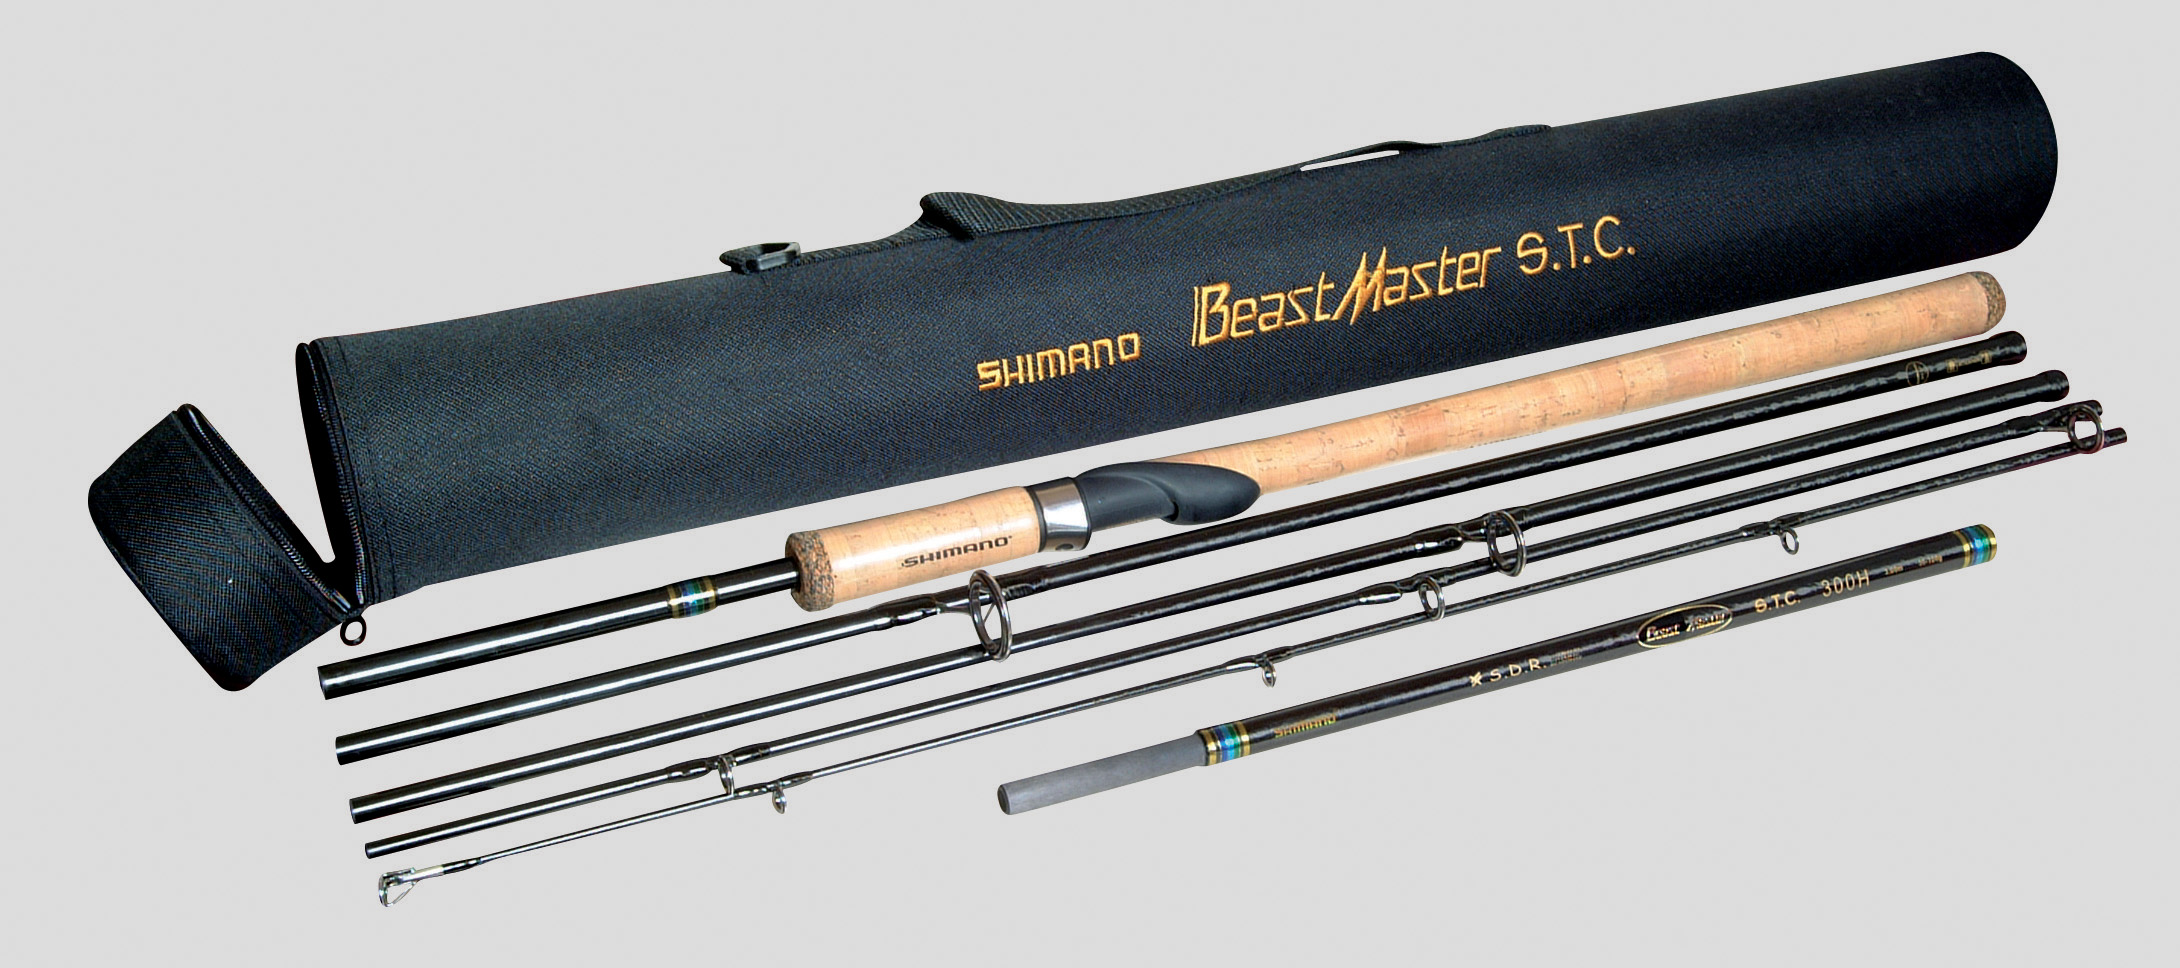 Shimano beastmaster stc spinning rod lure fishing rod for Best travel fishing rod